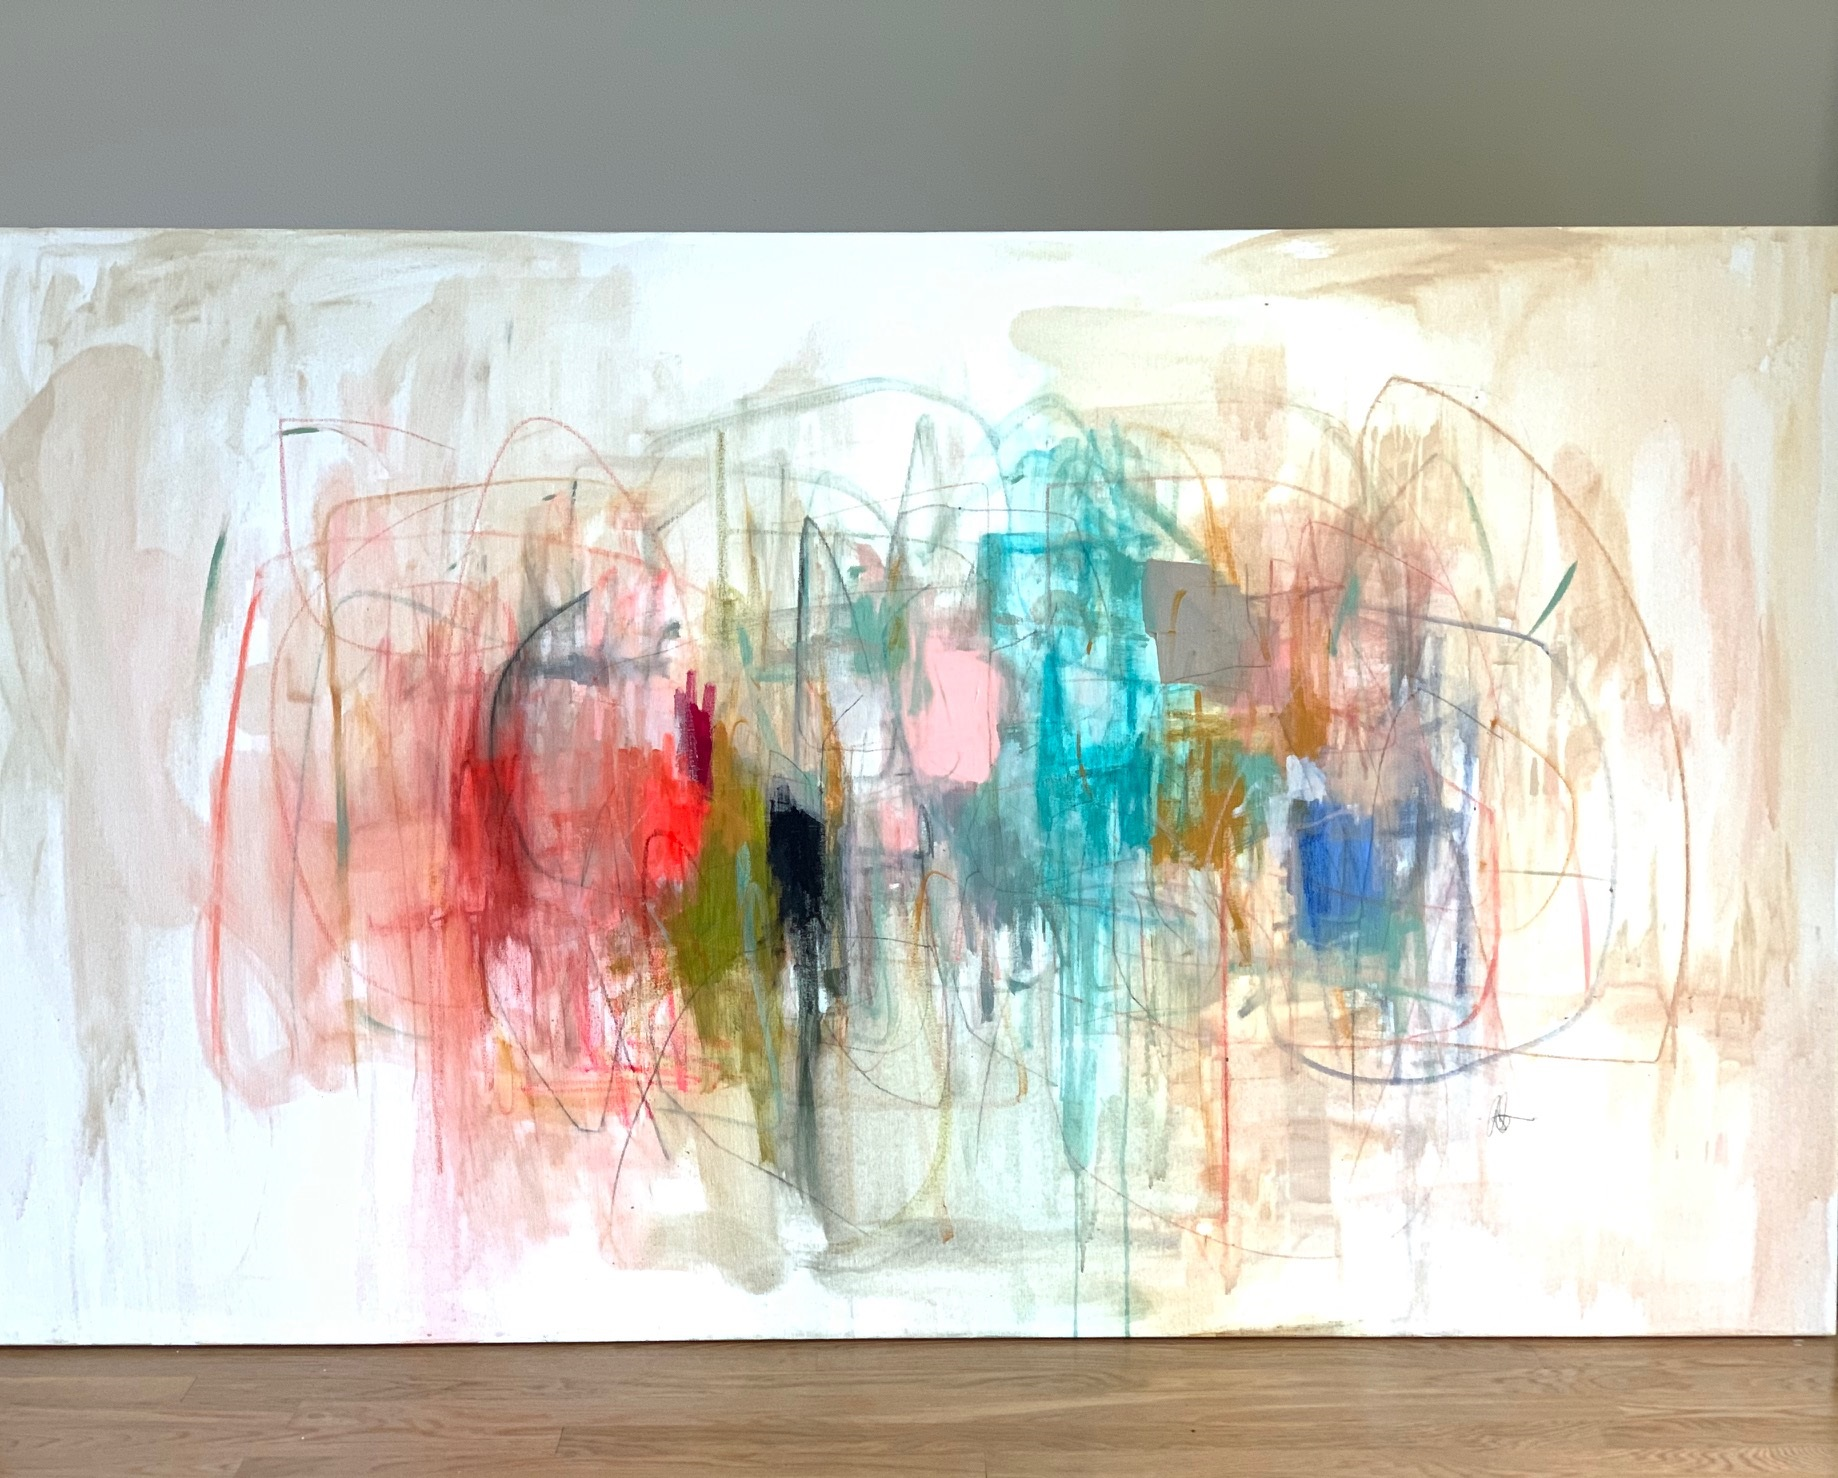 Big Emotions  36x60 inches  Acrylic, pastel & pencil on canvas  SOLD